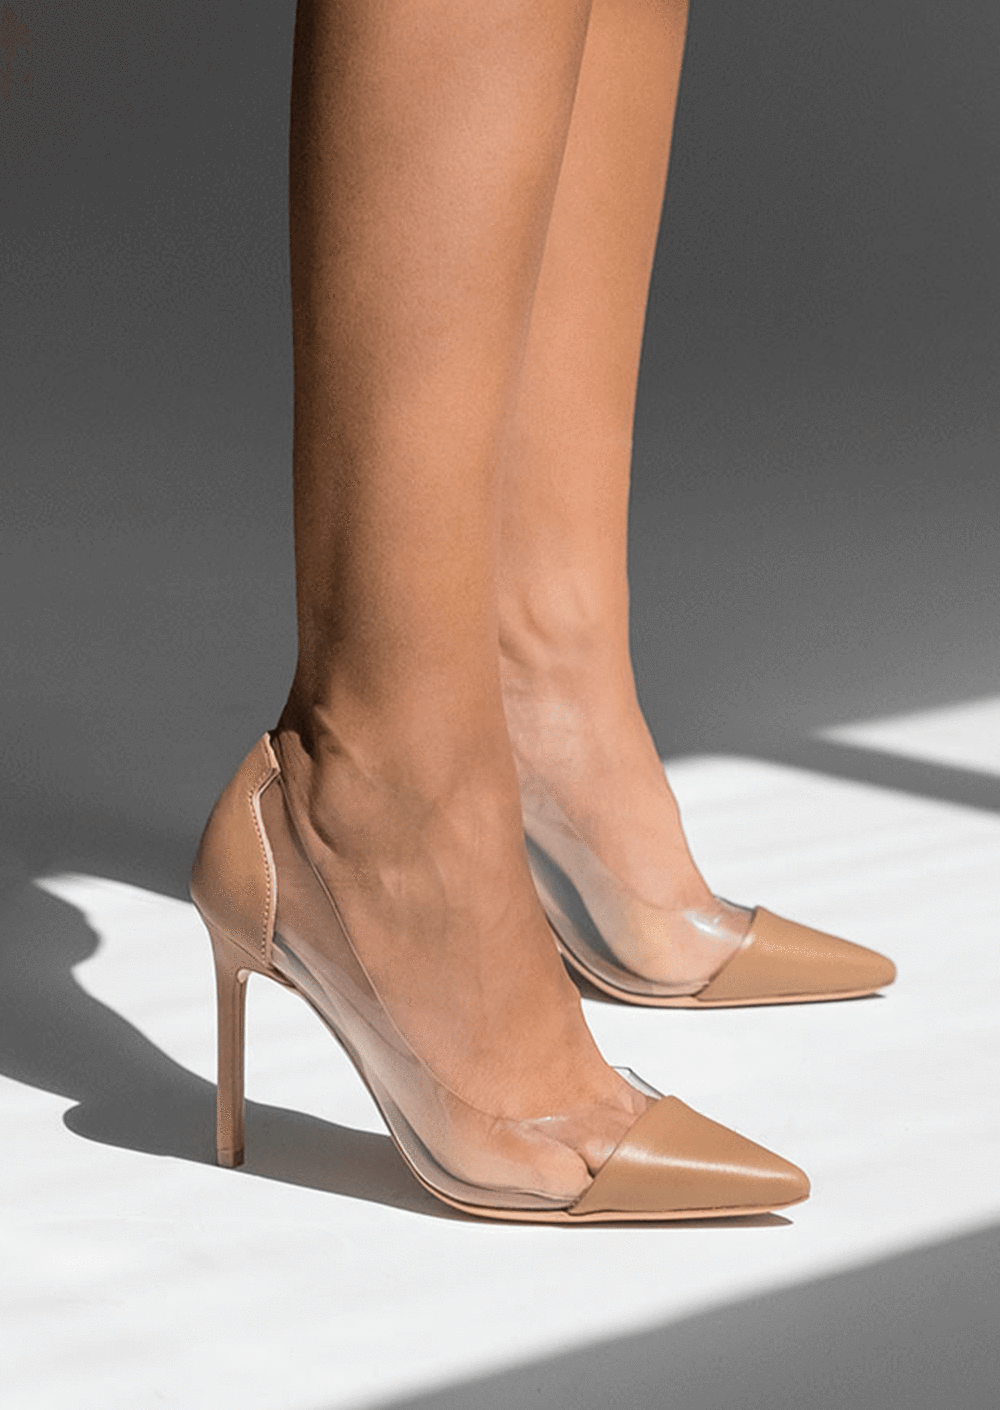 8a1feb878cf Laverne Skin Capretto Heels | STYLE | shoes in 2019 | Heels, Suede ...